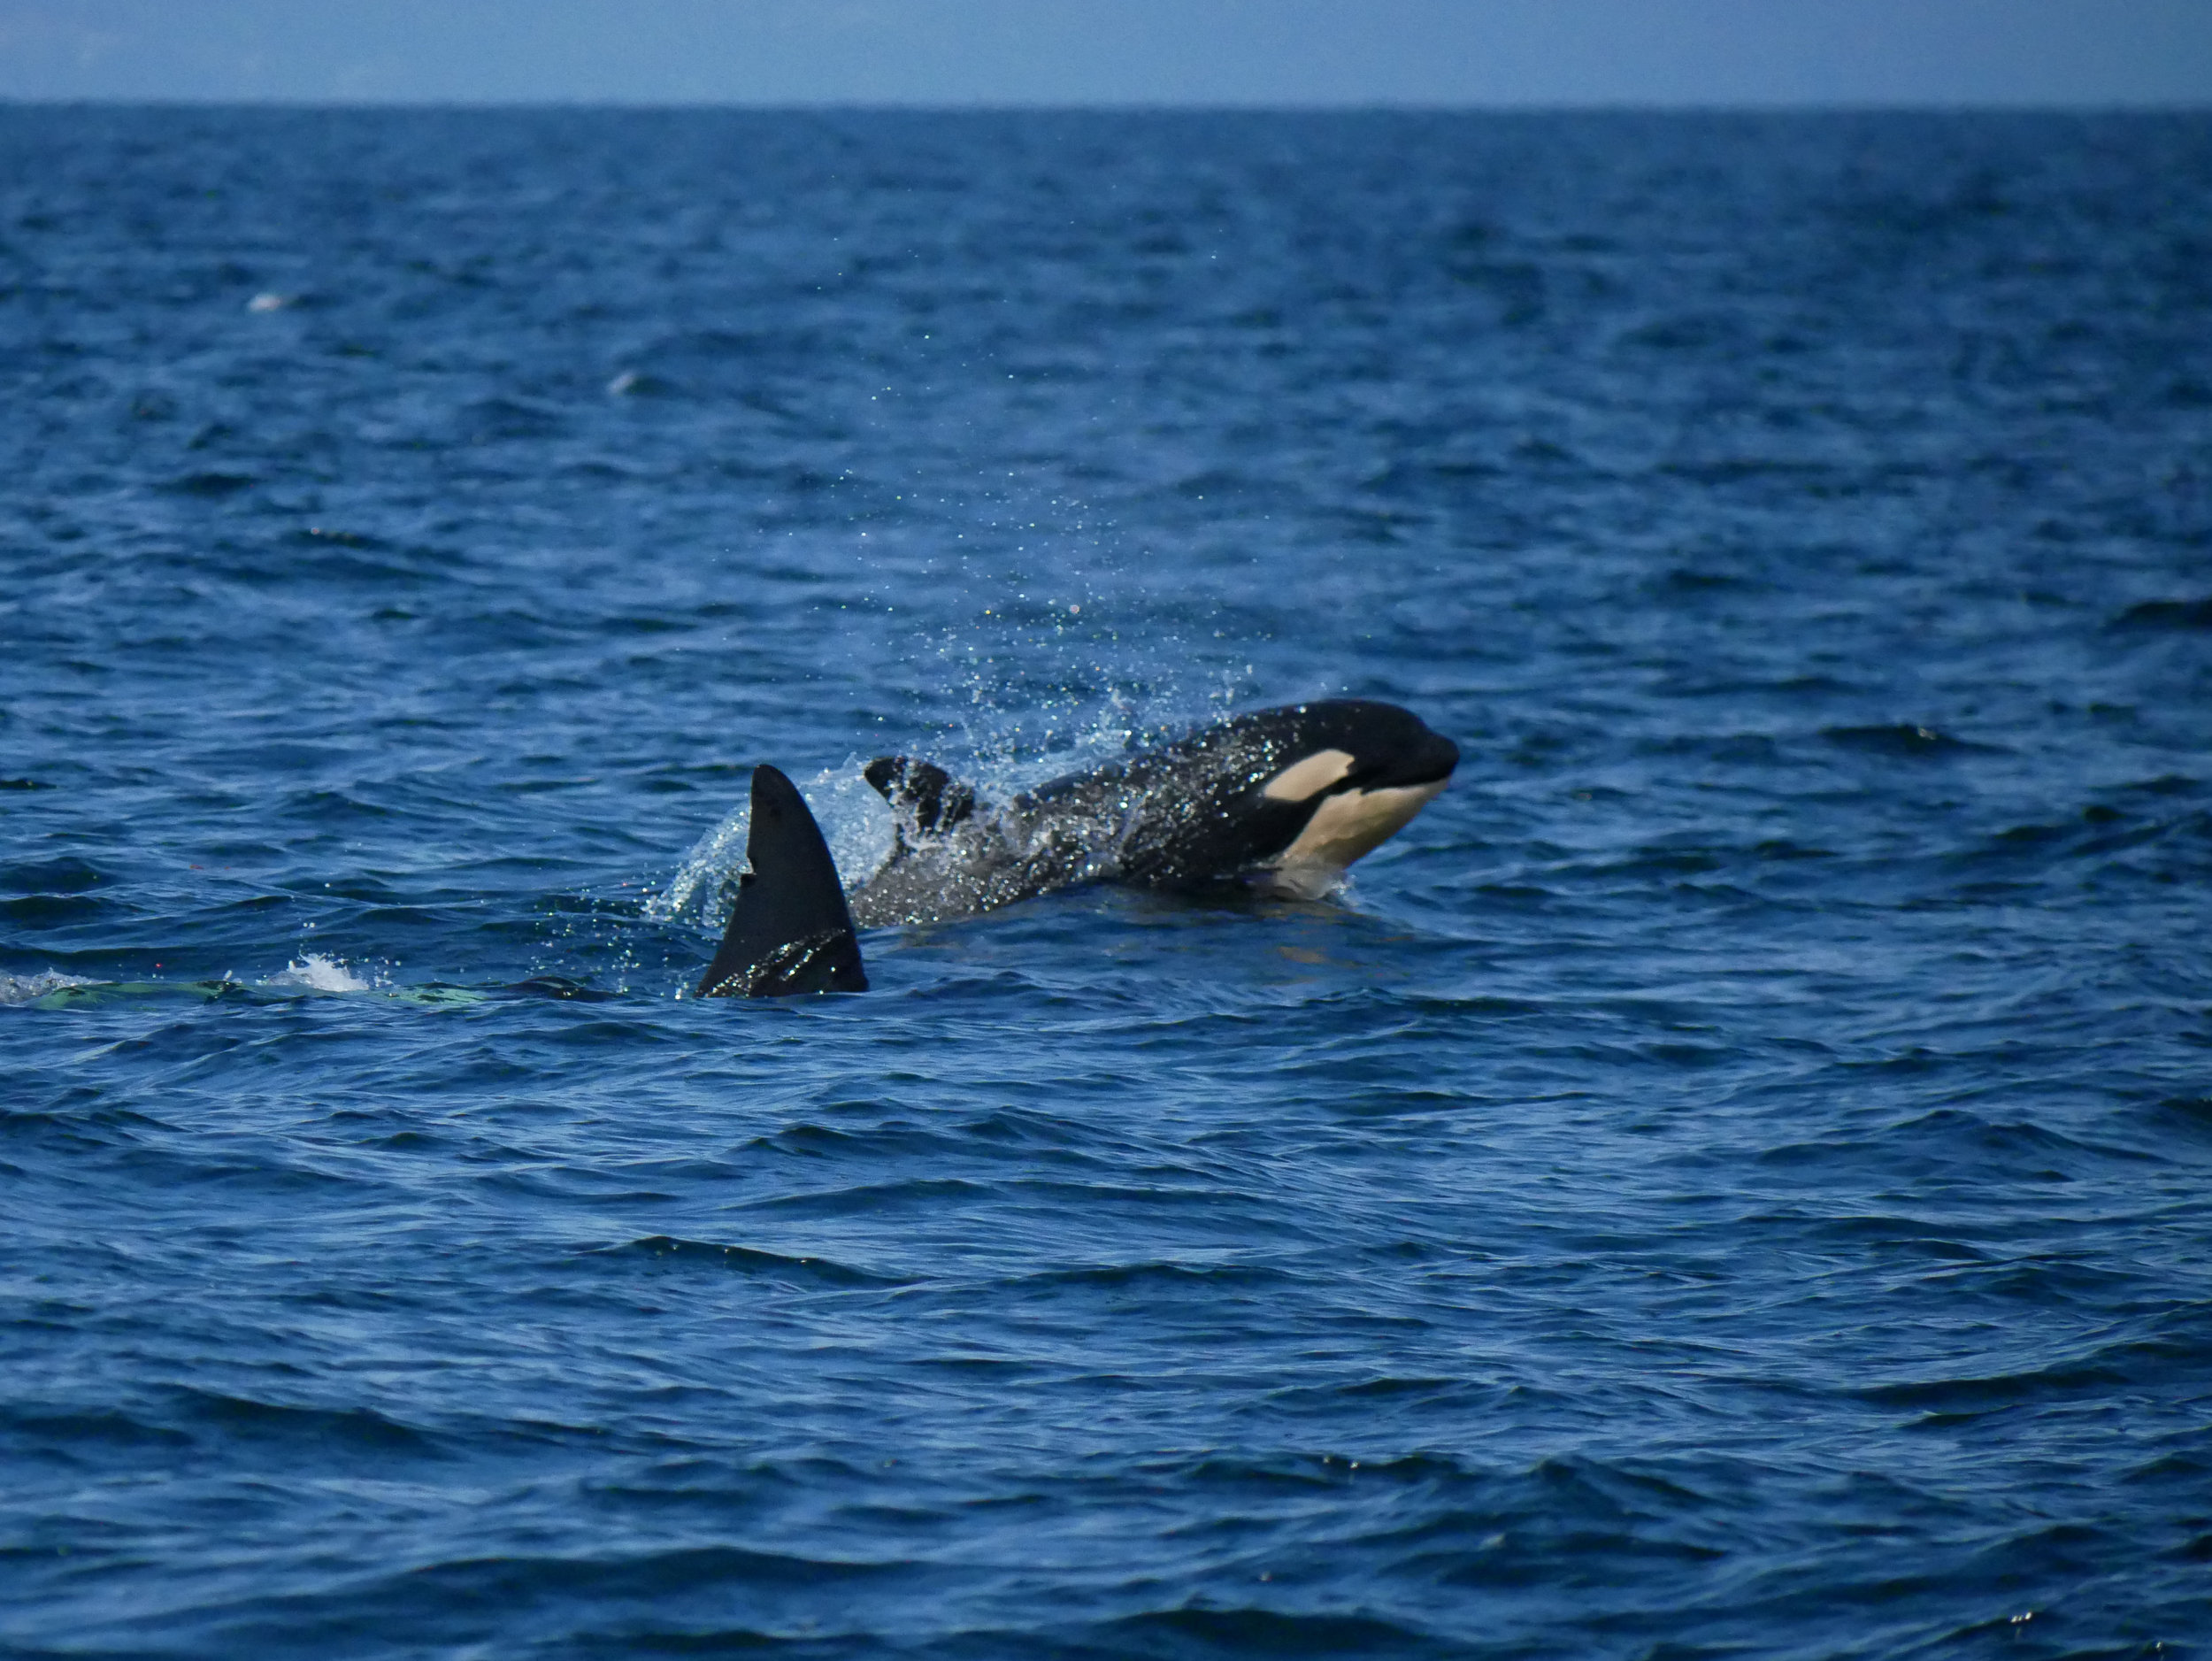 Orca calf coming up for air. This little guy has lots of learning to do and will stick very close to mom for the next couple of years. Photo by Mike Campbell.